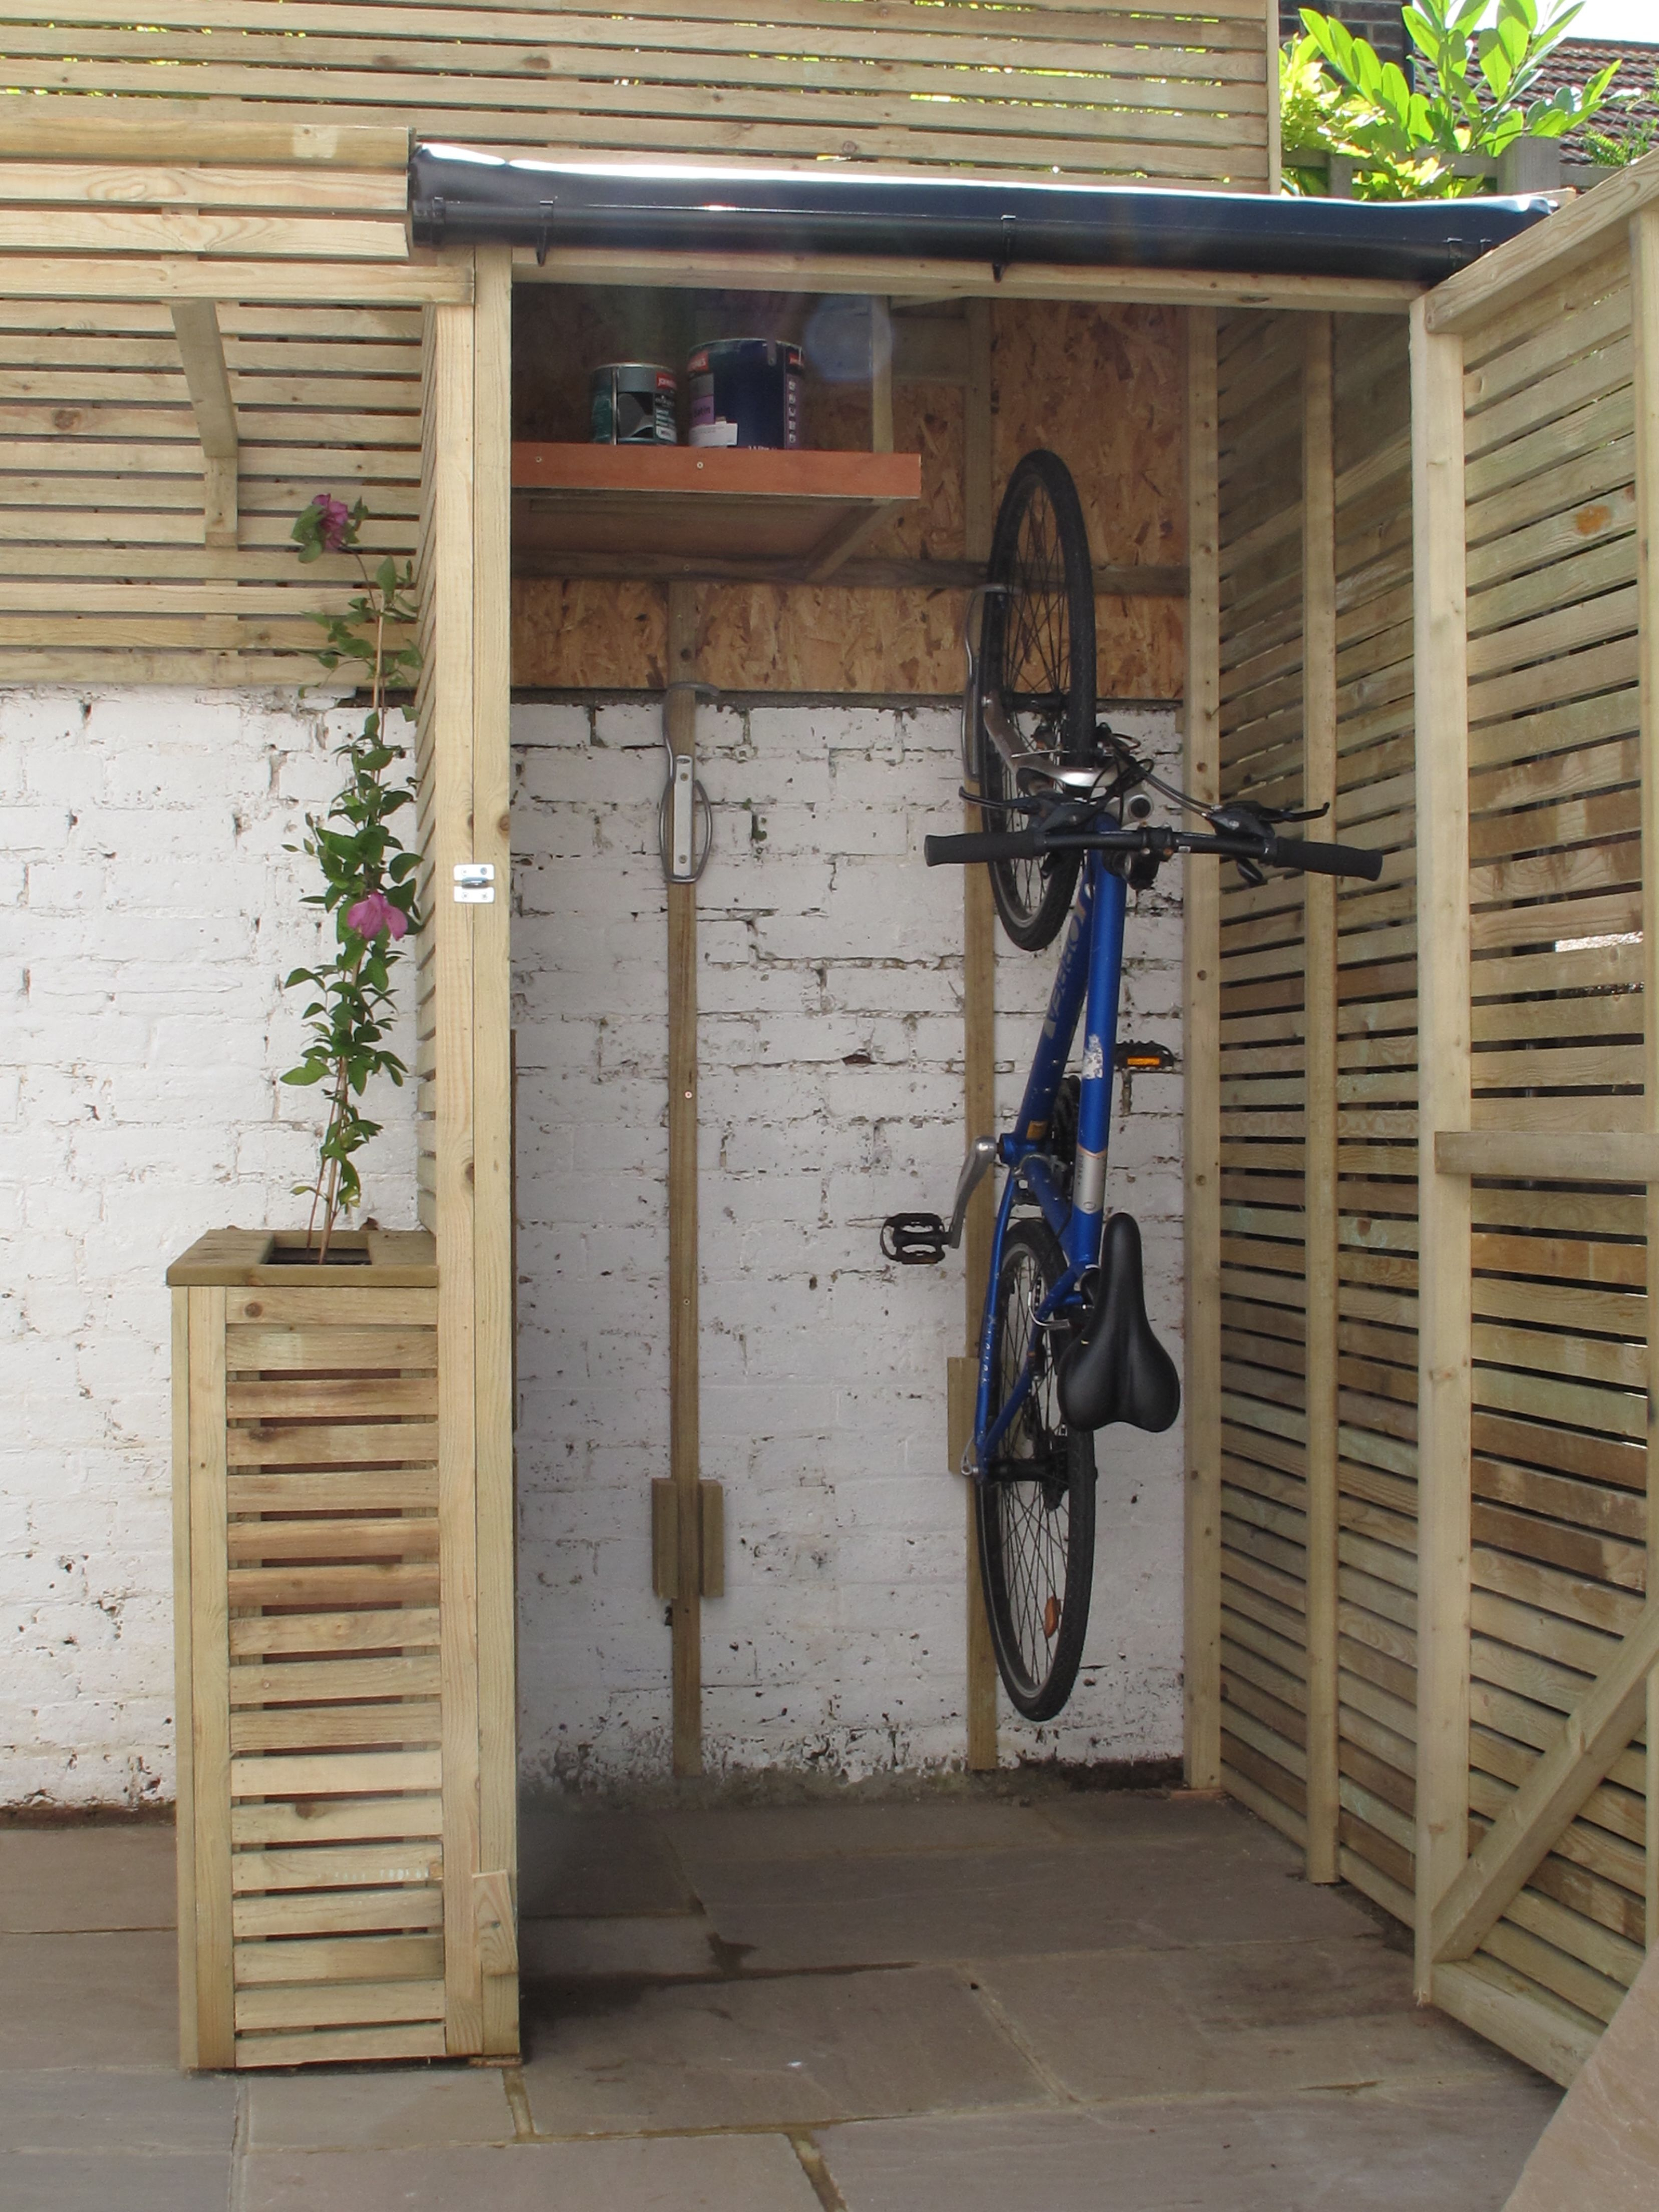 Diy Small Shed For Push Mower Last Edit July 04 2013 062203 with measurements 3312 X 4416